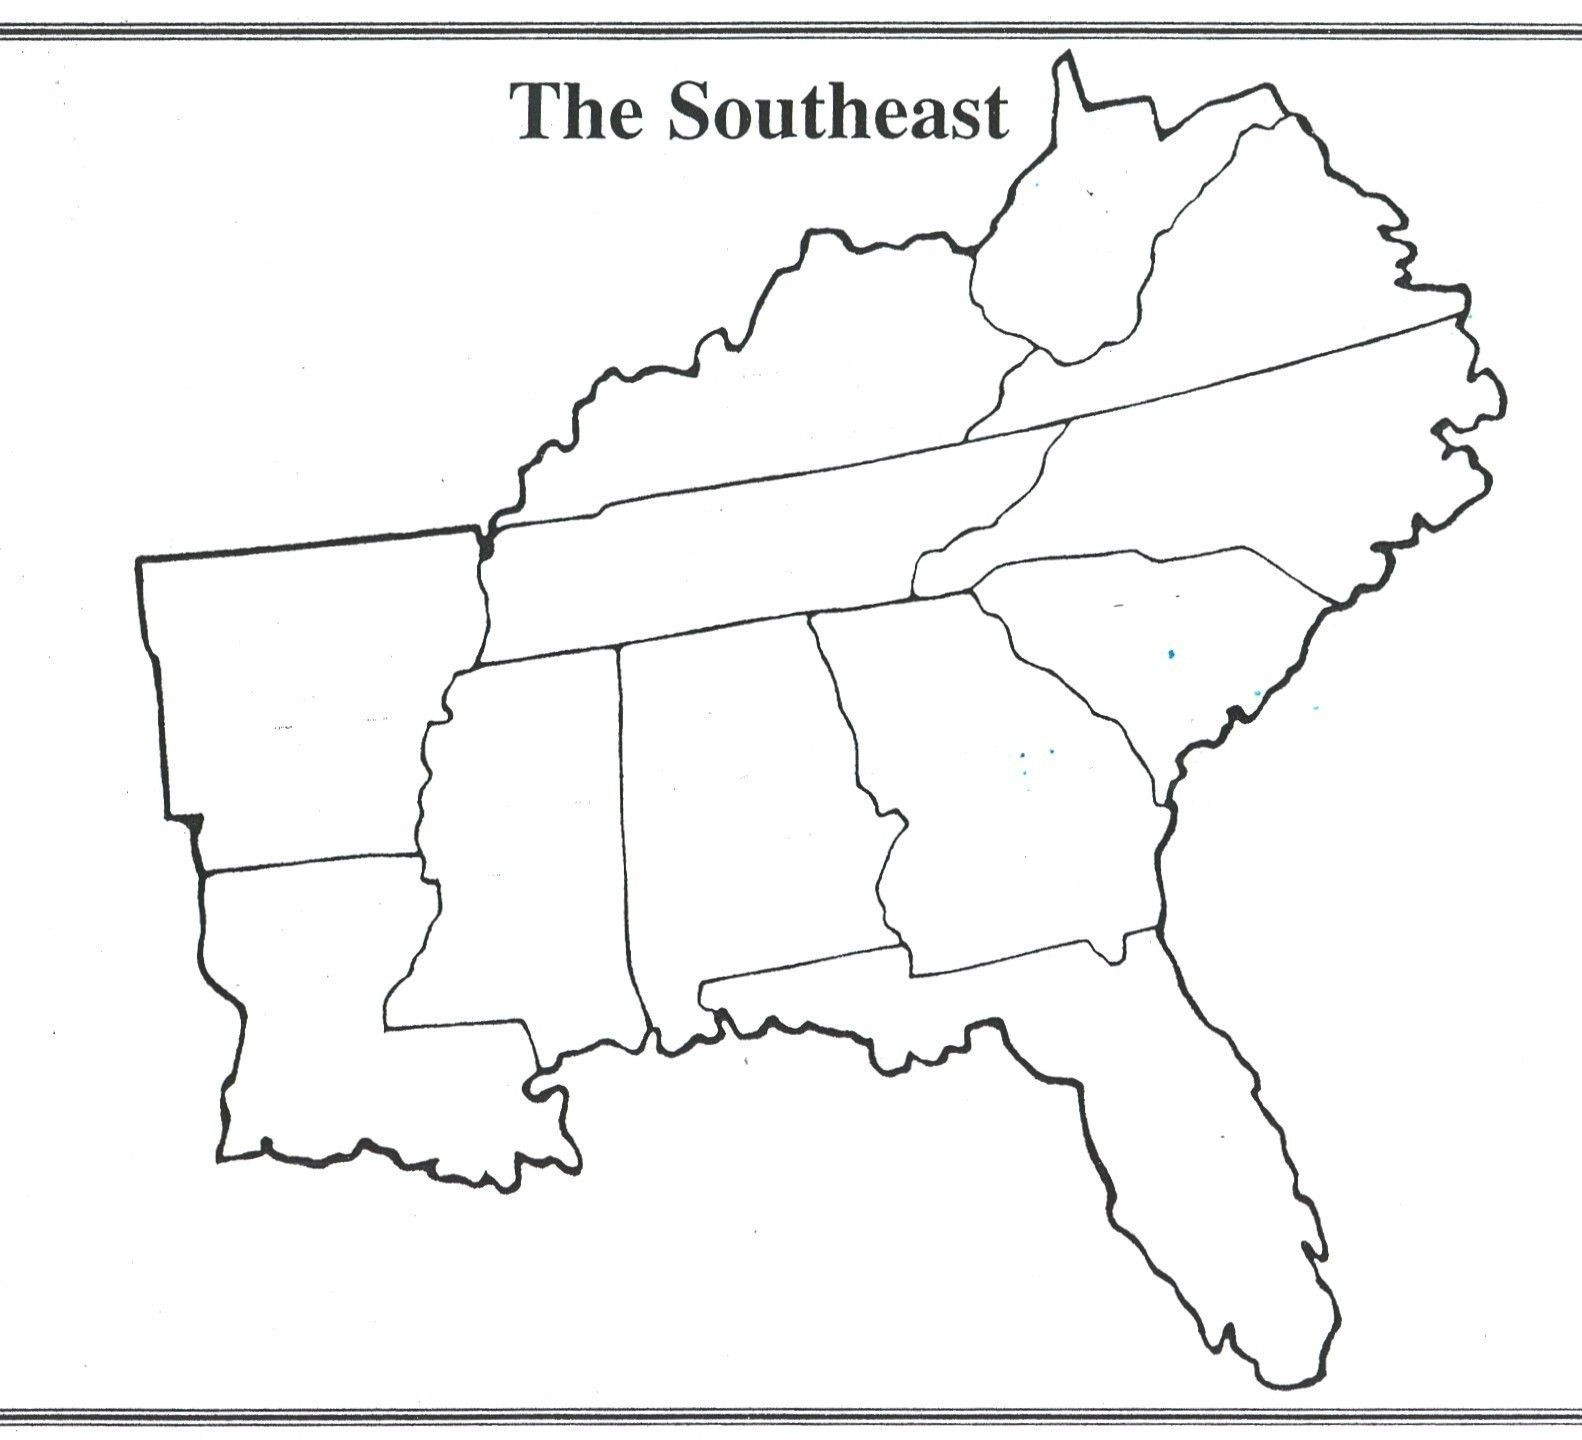 State and Capital Quiz Printable Interesting Blank Us Map Quiz Printable south Eastern States